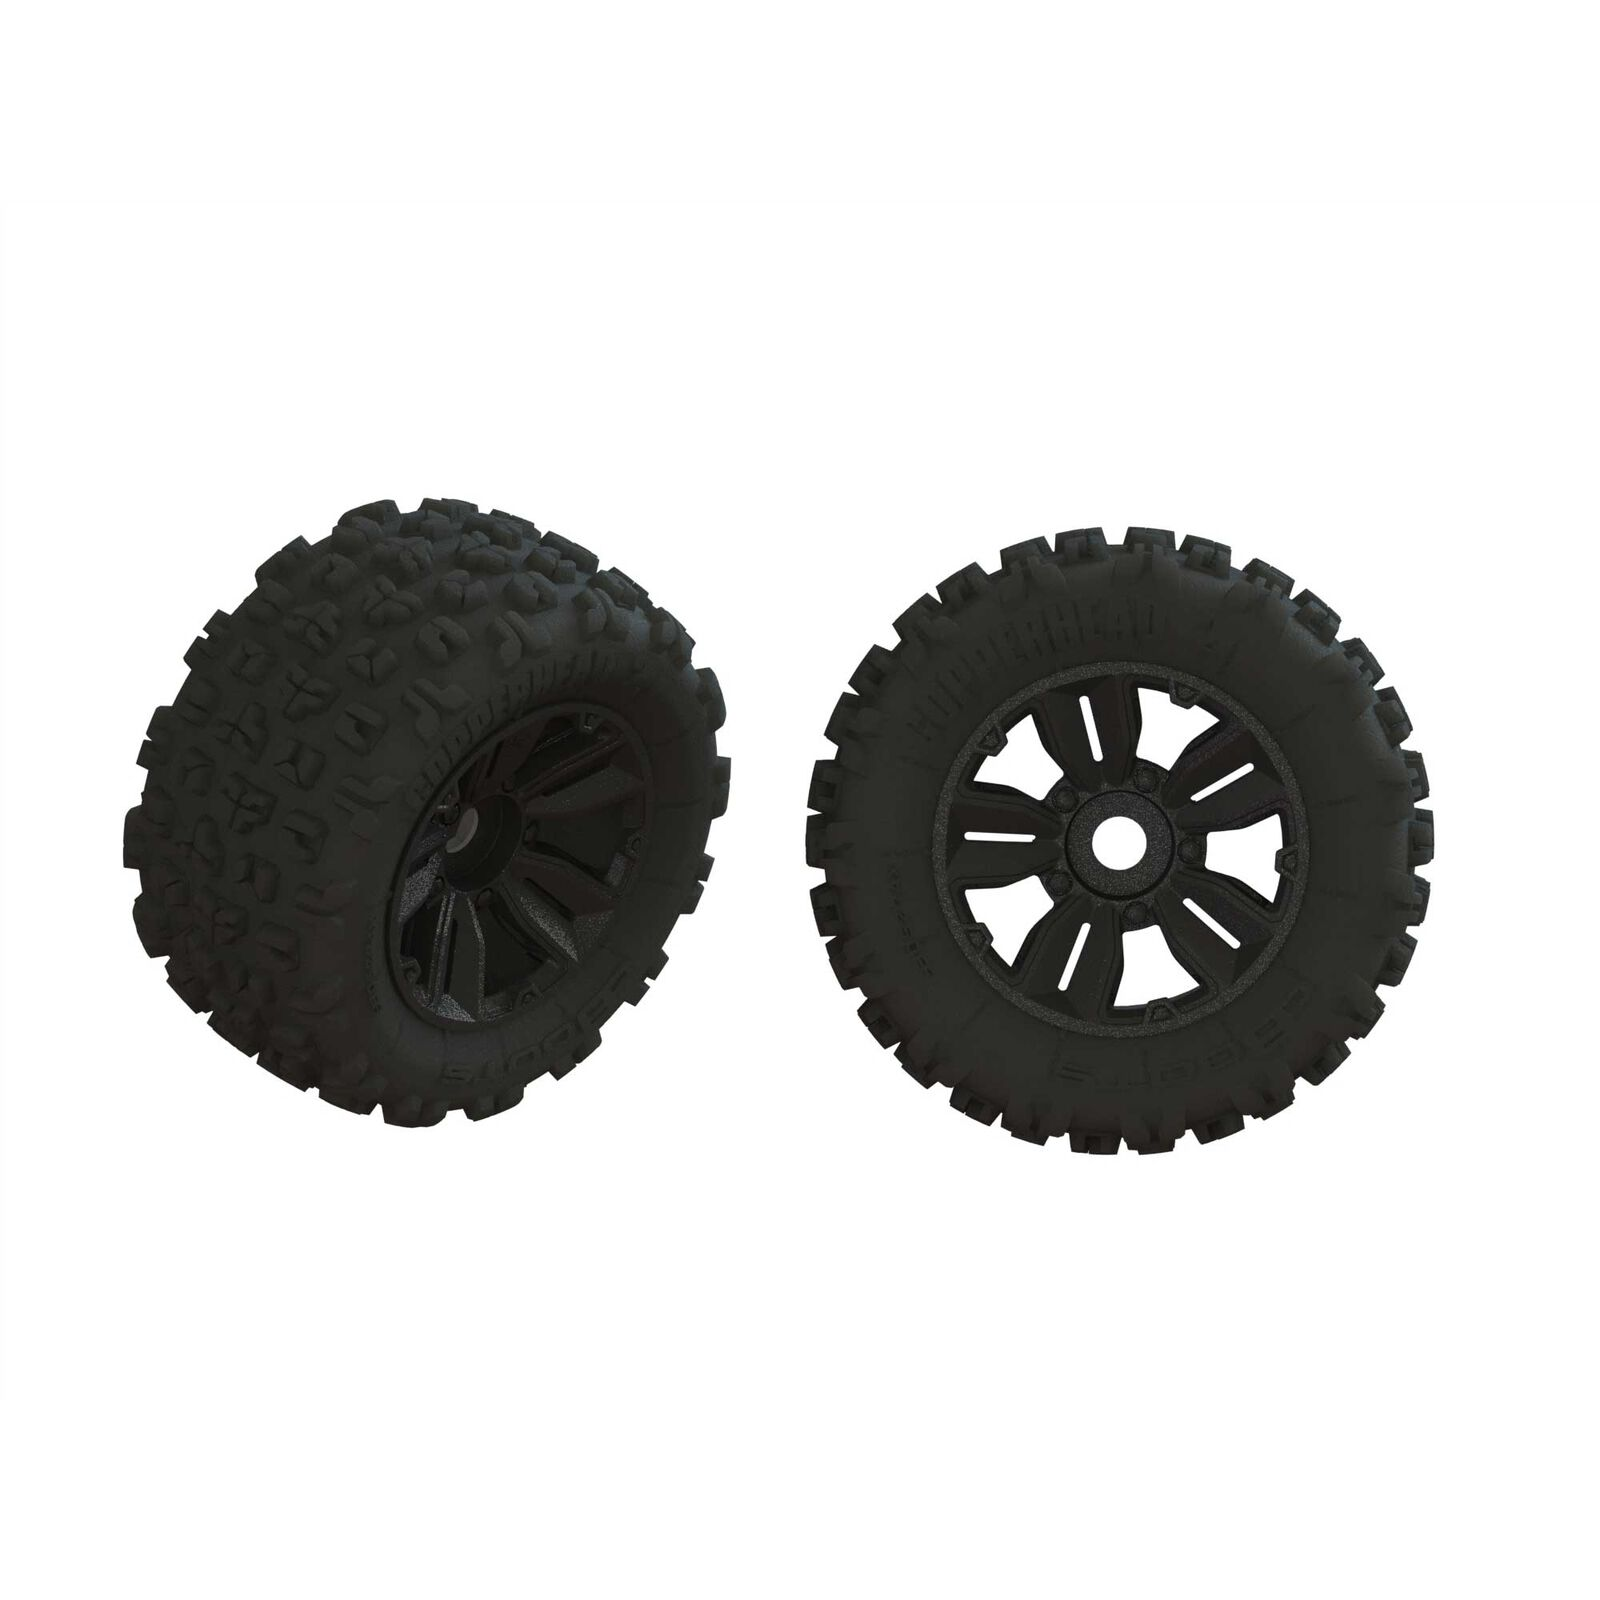 1/5 dBoots Copperhead2 SB MT Front/Rear 3.9 Pre-Mounted Tires, 17mm Hex (2)